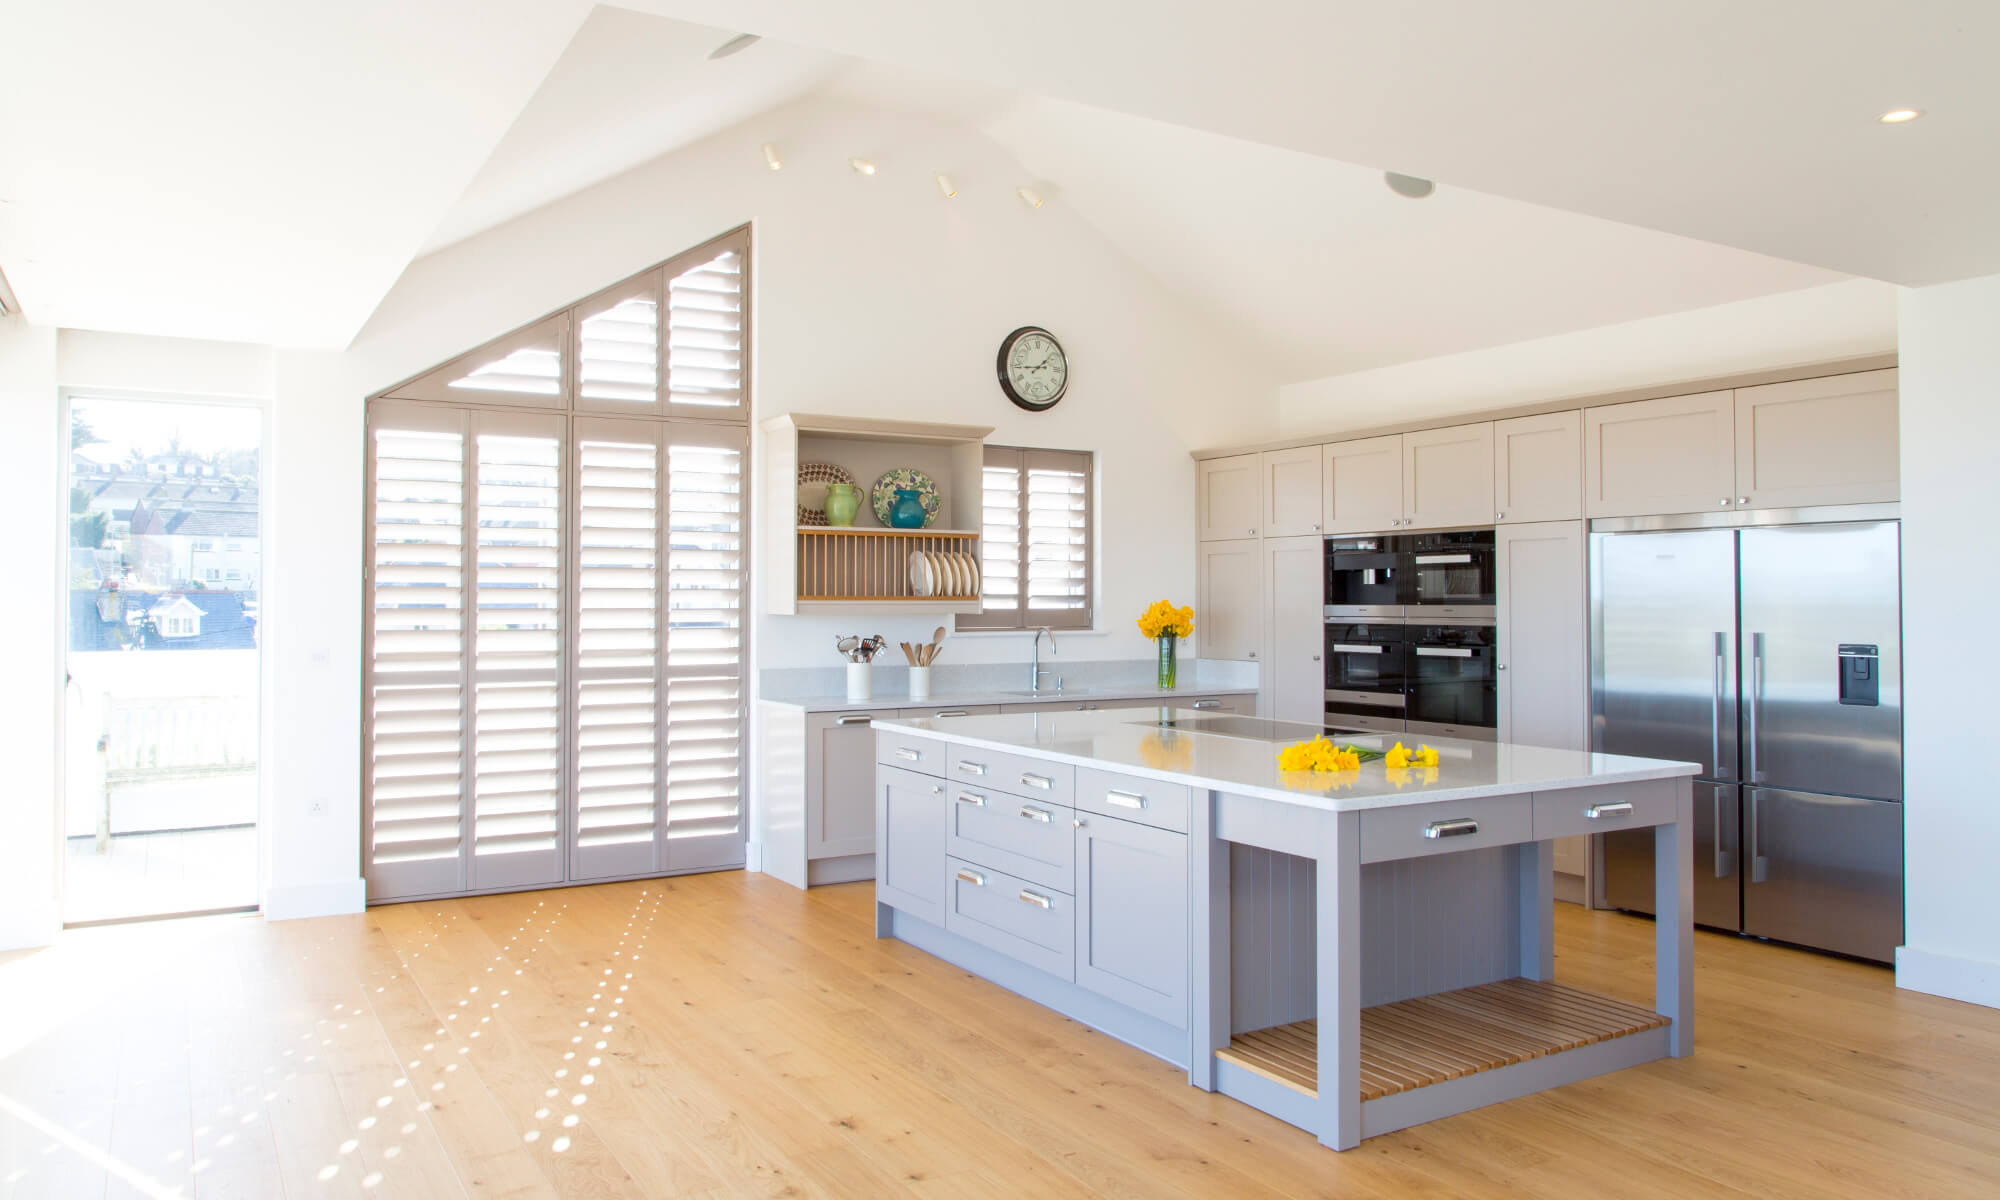 Design Interiors Ltd Of Guernsey Kitchens Appliances And Fitted